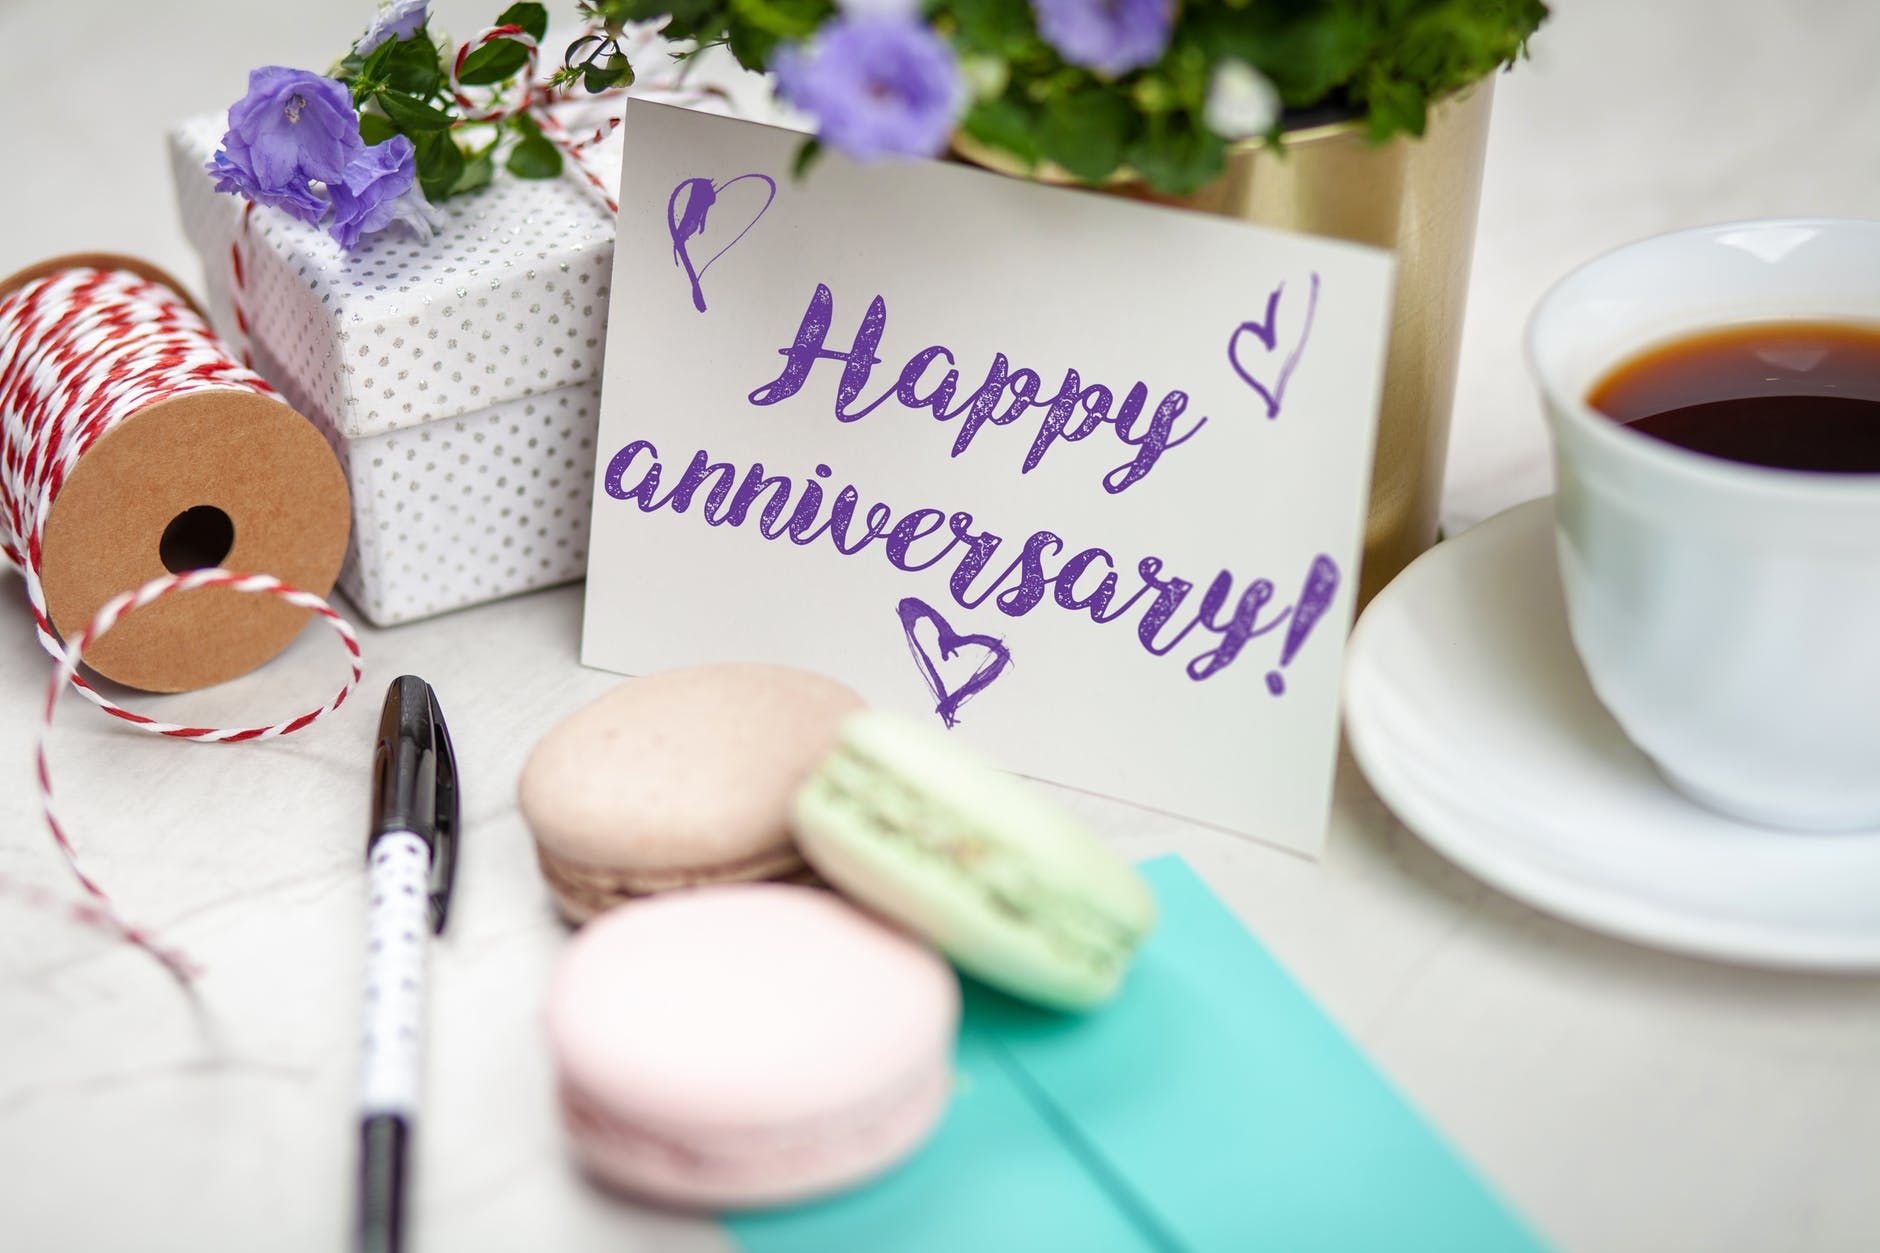 Forty years of married life – makes us sound old!